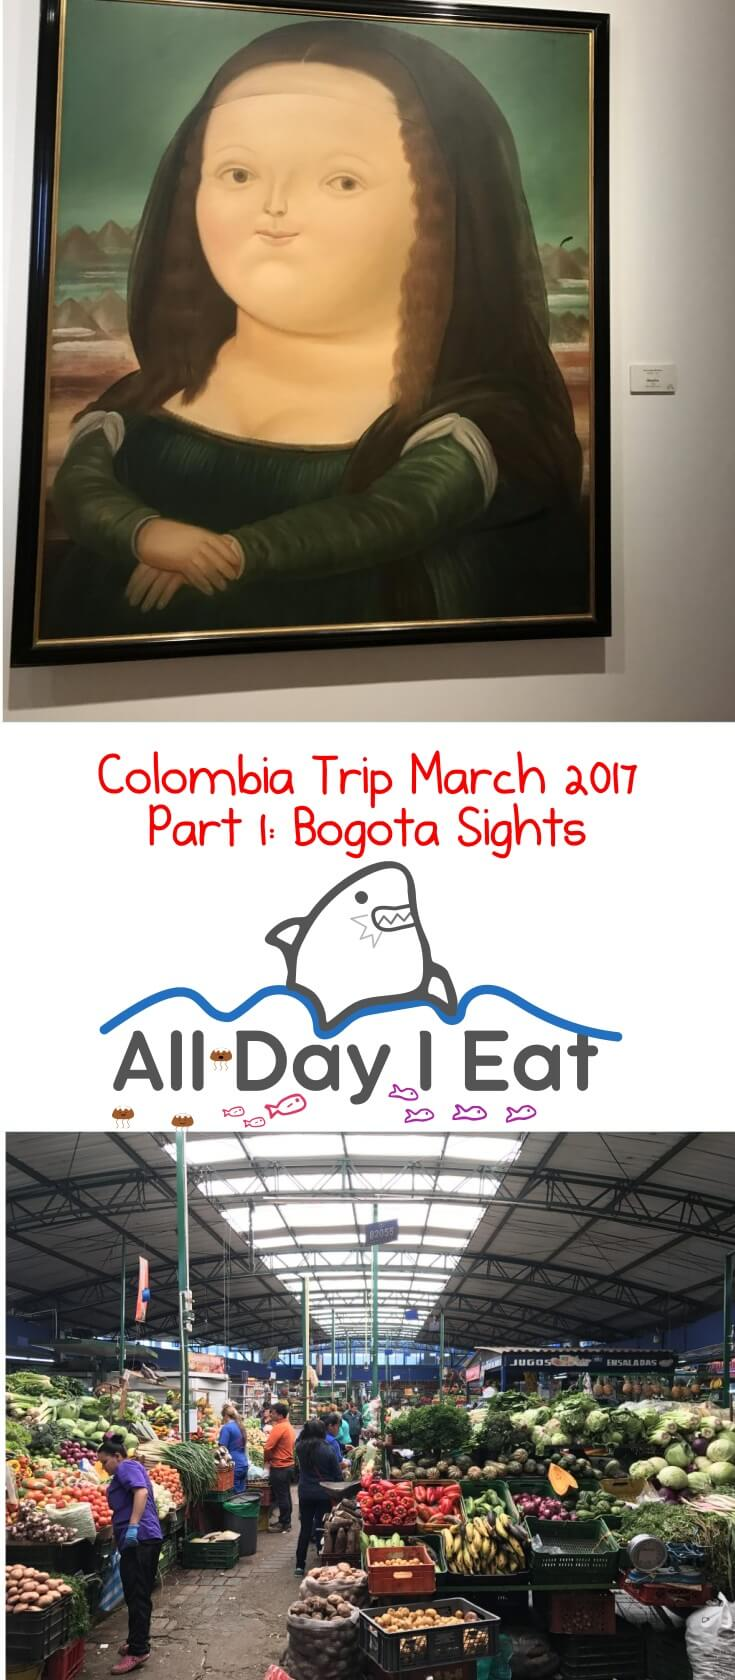 Colombia Trip March 2017 Part 1: Bogota Sights. A beautiful South American city with plenty of street art and sights. | www.alldayieat.com